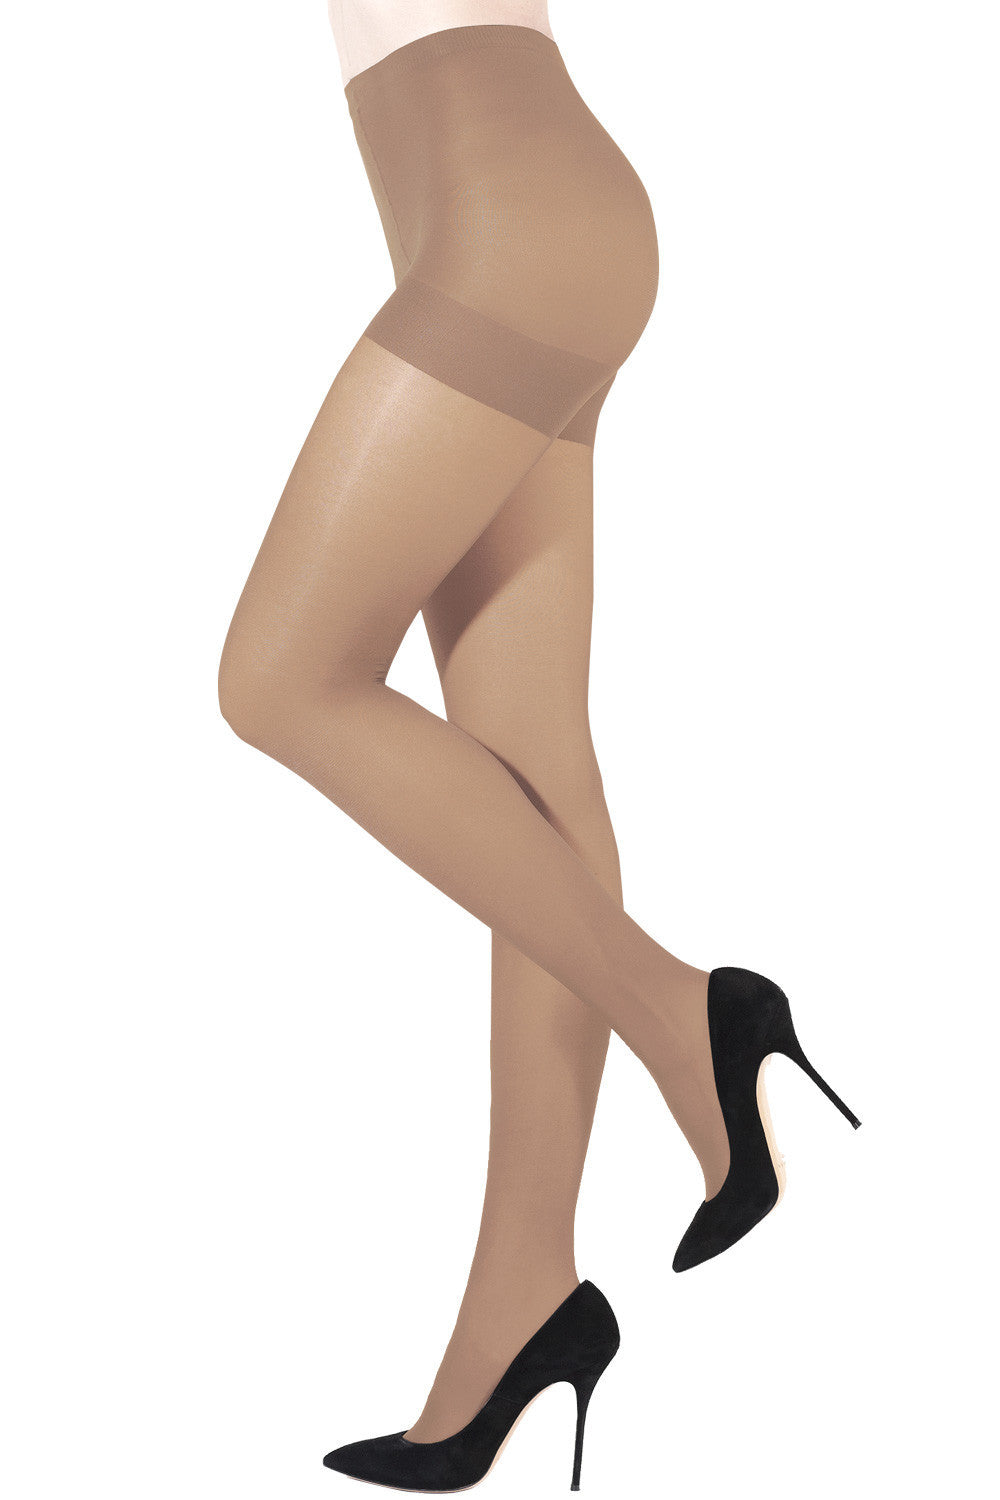 Sheer Tights 3 Dim With Control Top